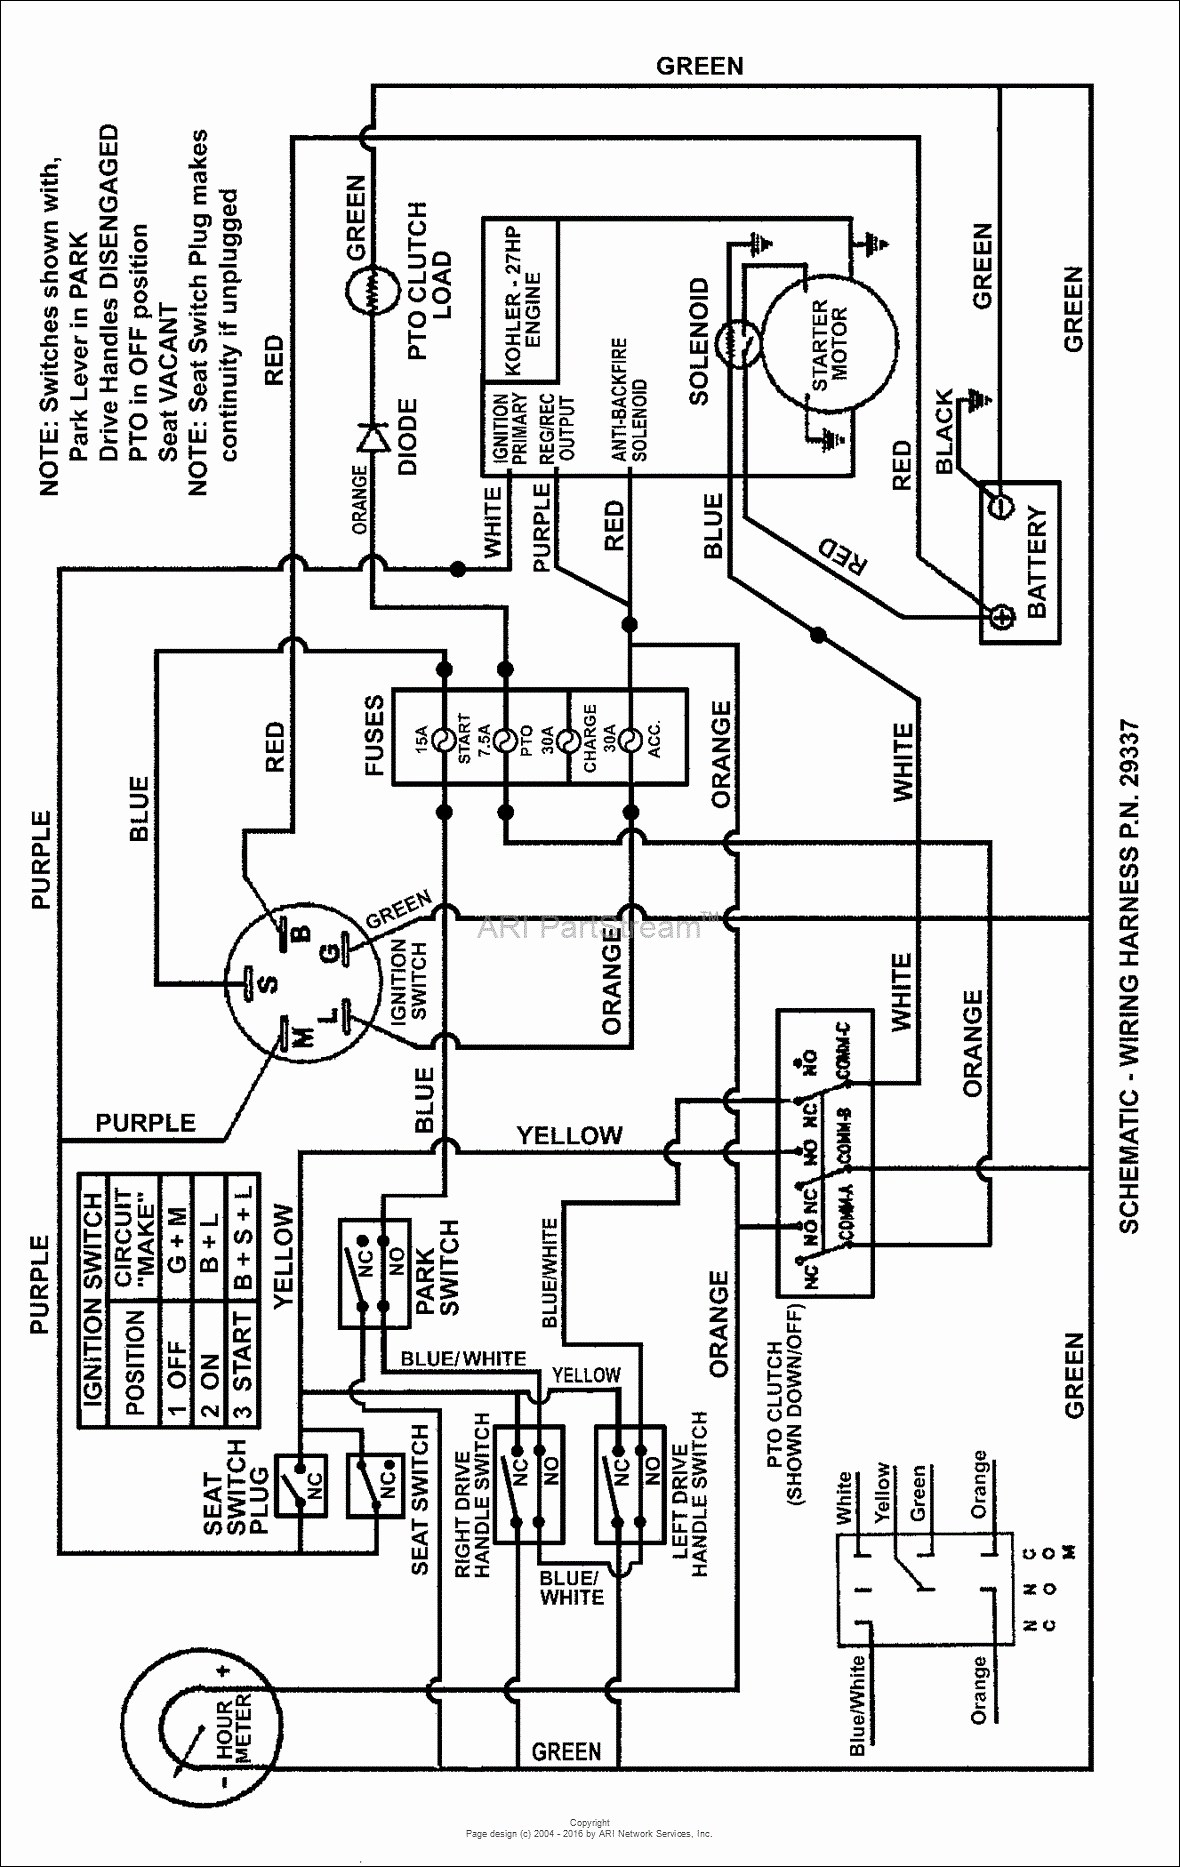 Kubota Charging System Wiring Diagram | Manual E-Books - Kubota Voltage Regulator Wiring Diagram